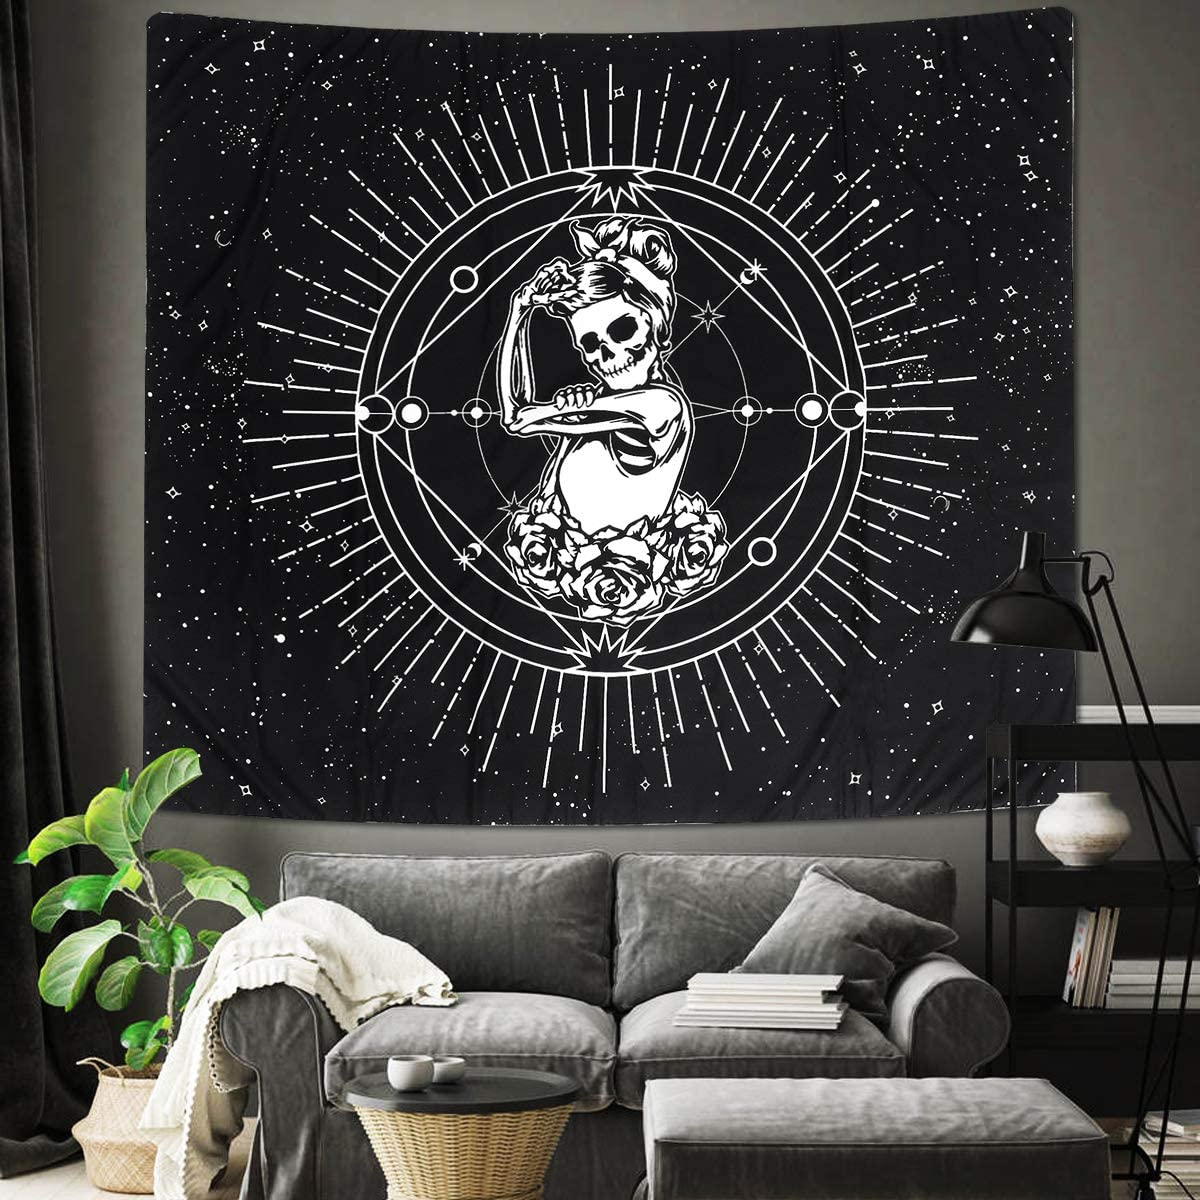 Jeteven Tapestry Wall Hanging, Black and White Skull Print Tapestry Bedroom Home Decor Polyester Hanging Tapestry Chakra Starry Skeleton Tapestry, 78''×59''